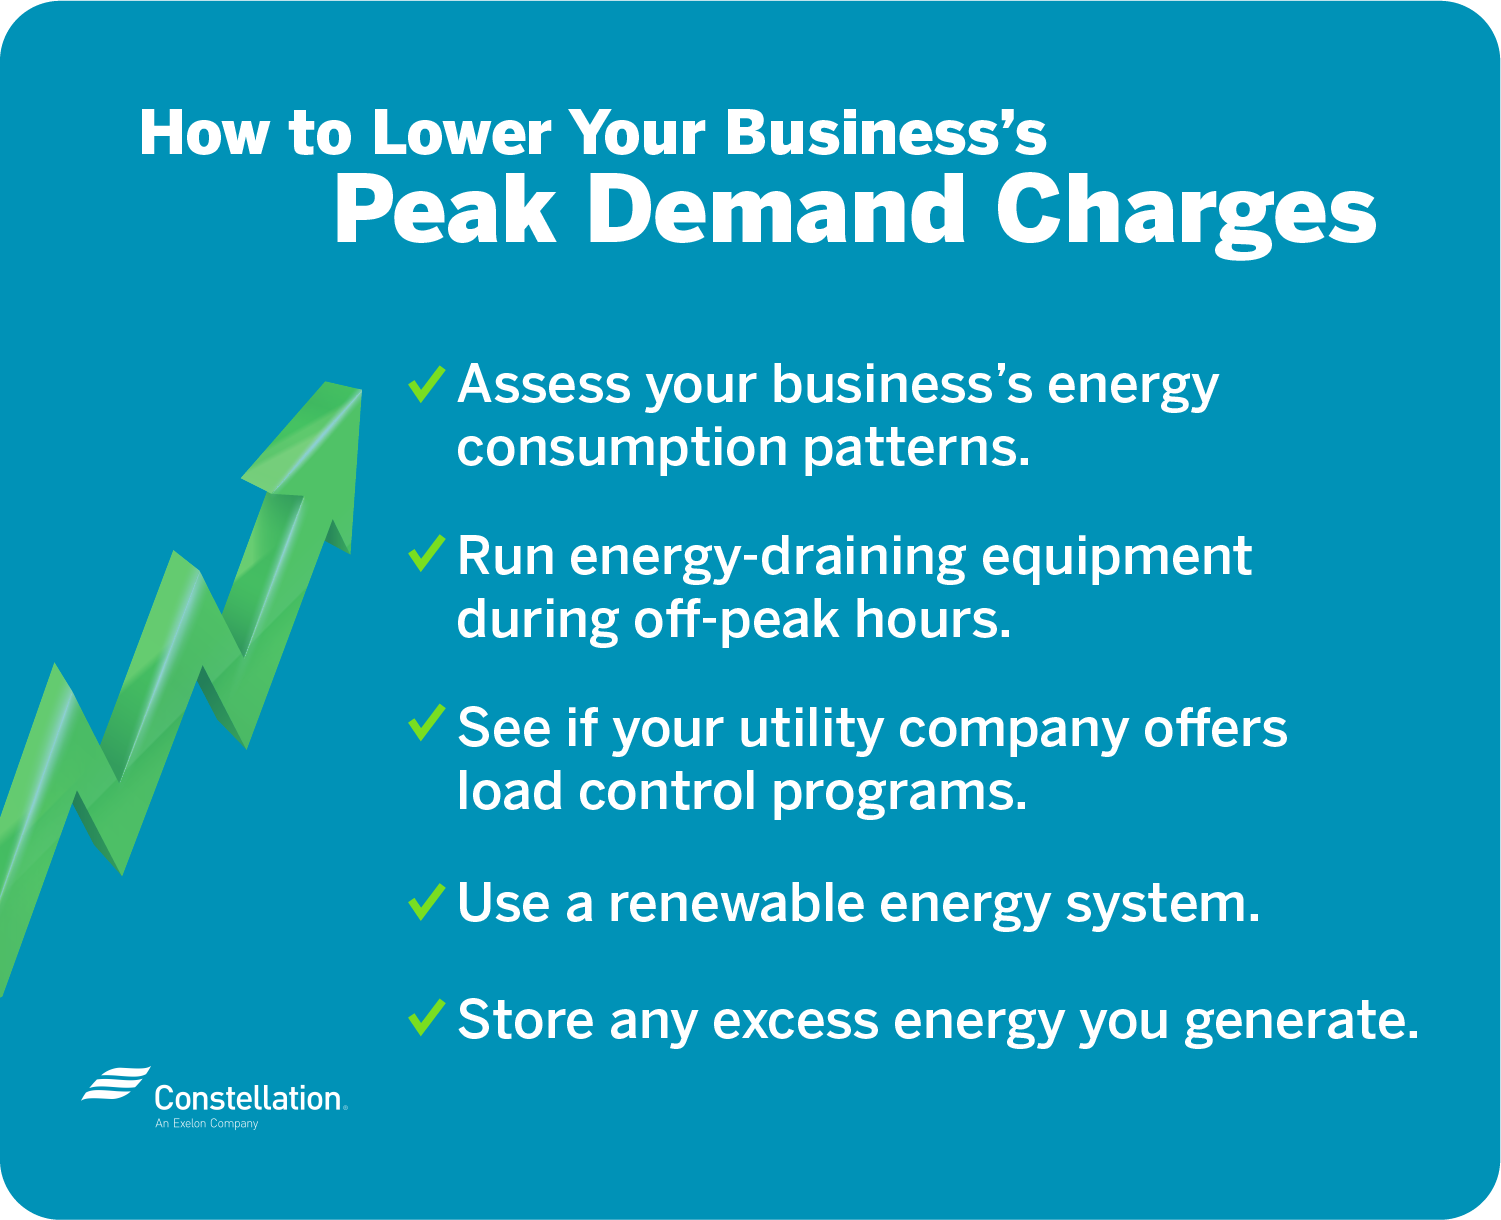 How to lower your business's peak demand charges